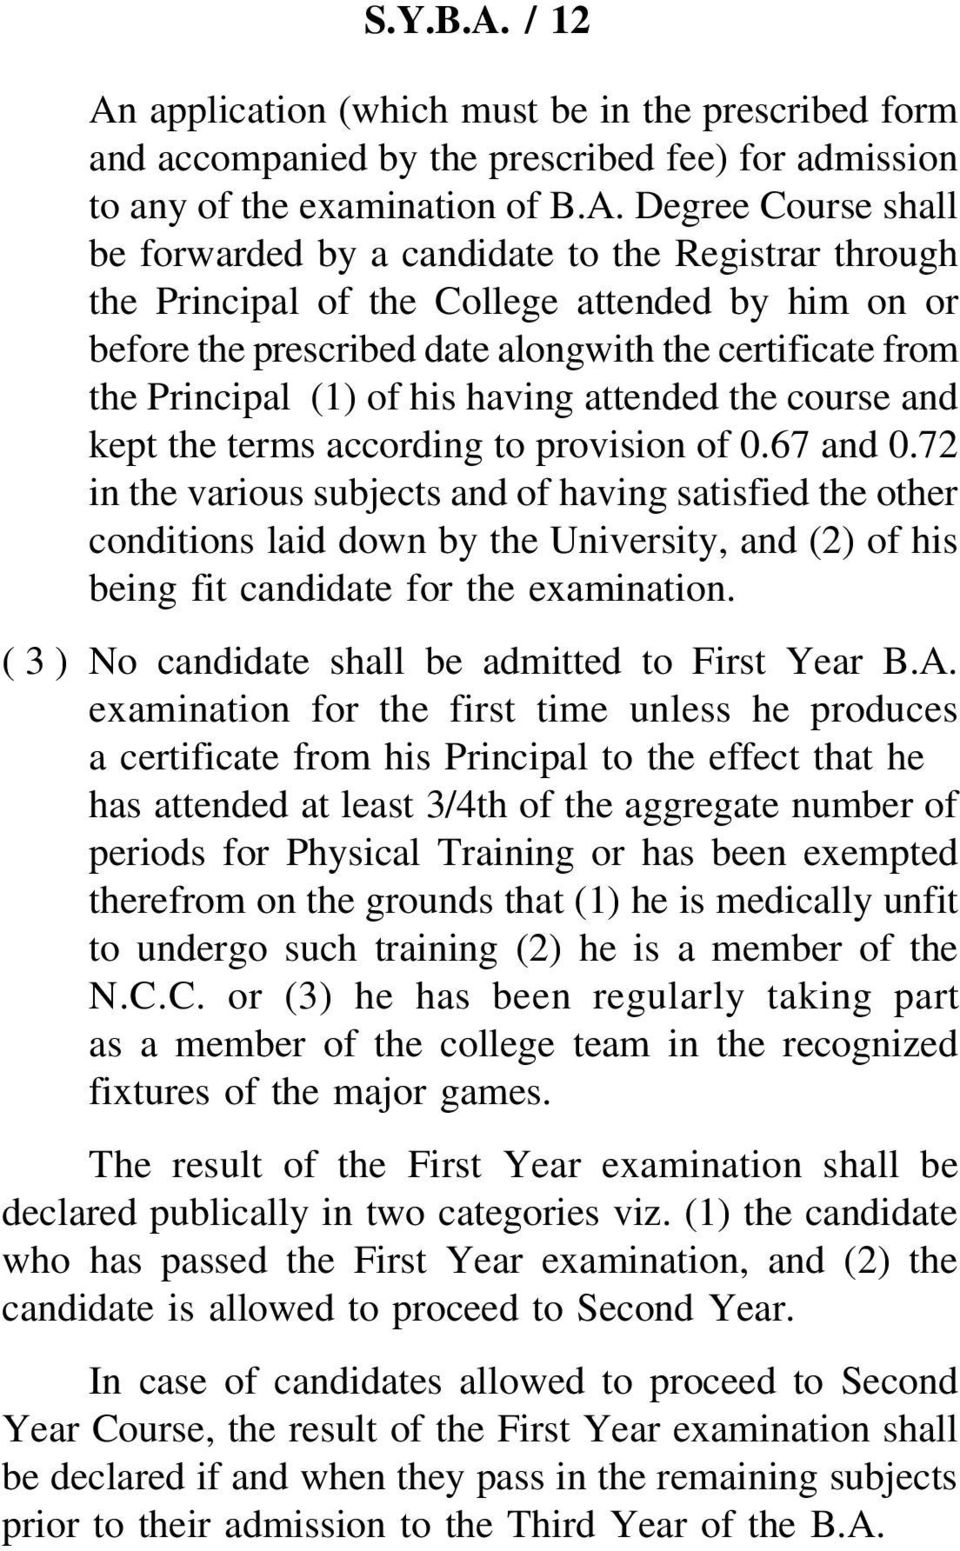 application (which must be in the prescribed form and accompanied by the prescribed fee) for admission to any of the examination of B.A.